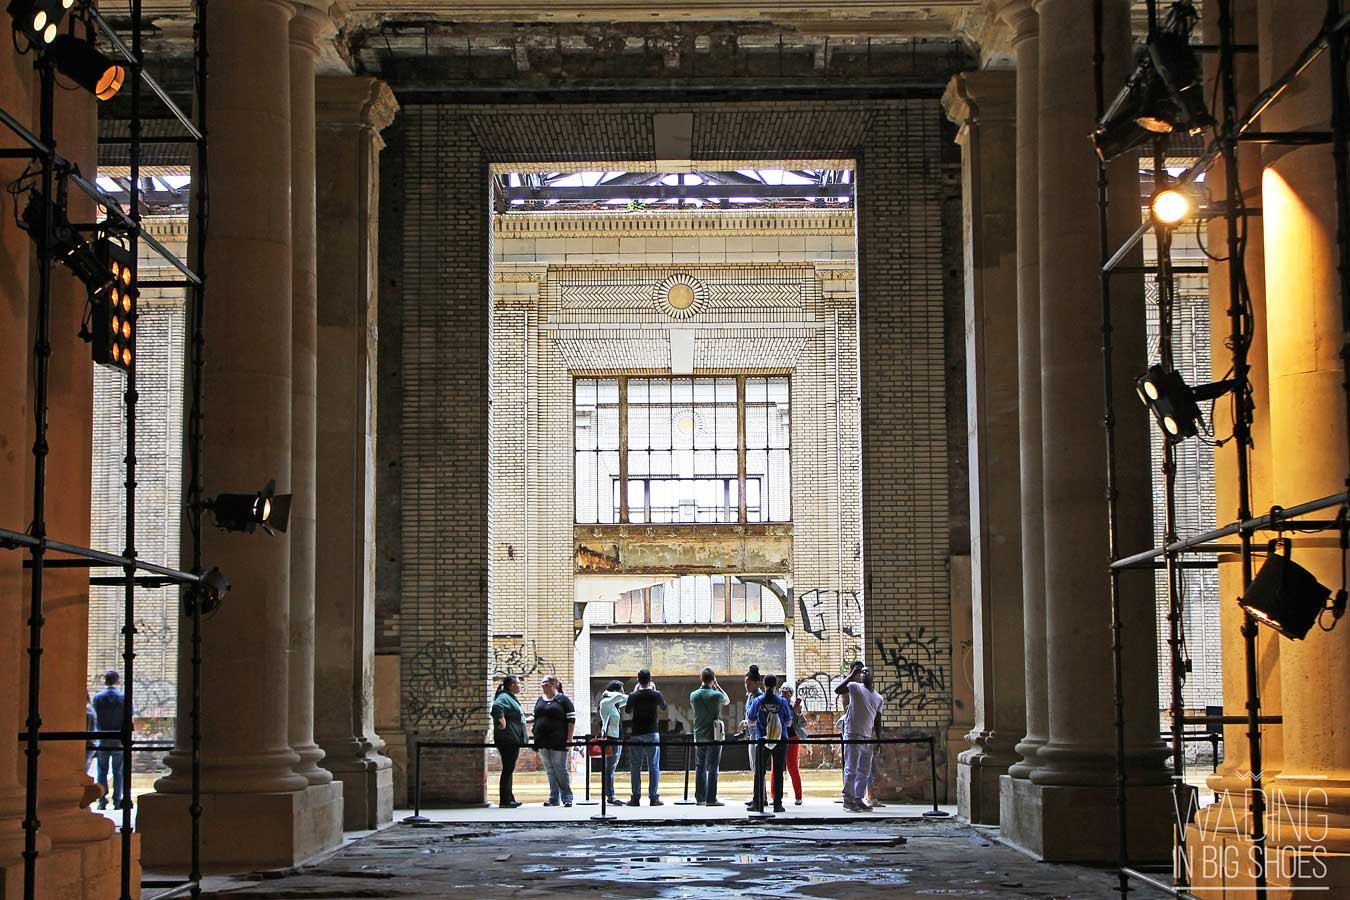 A Look Inside The Soon-To-Reopen Michigan Central Station (via Wading in Big Shoes)